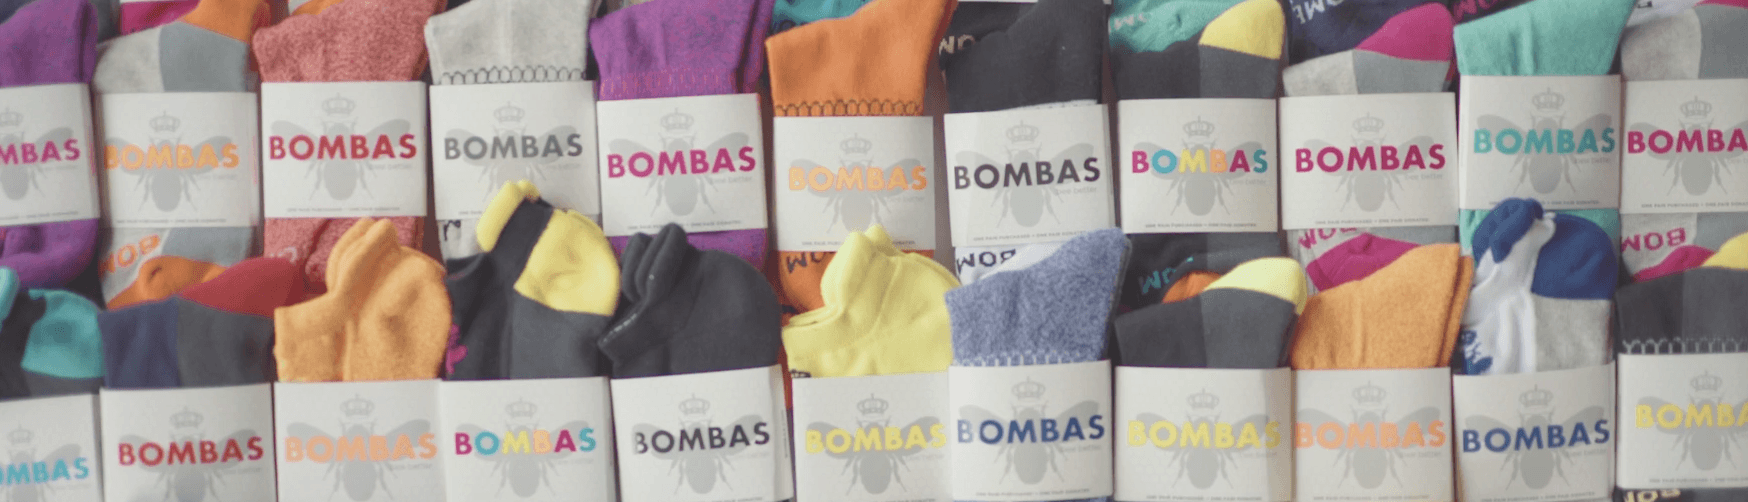 Bombas Donates Its Millionth Pair | TURNER